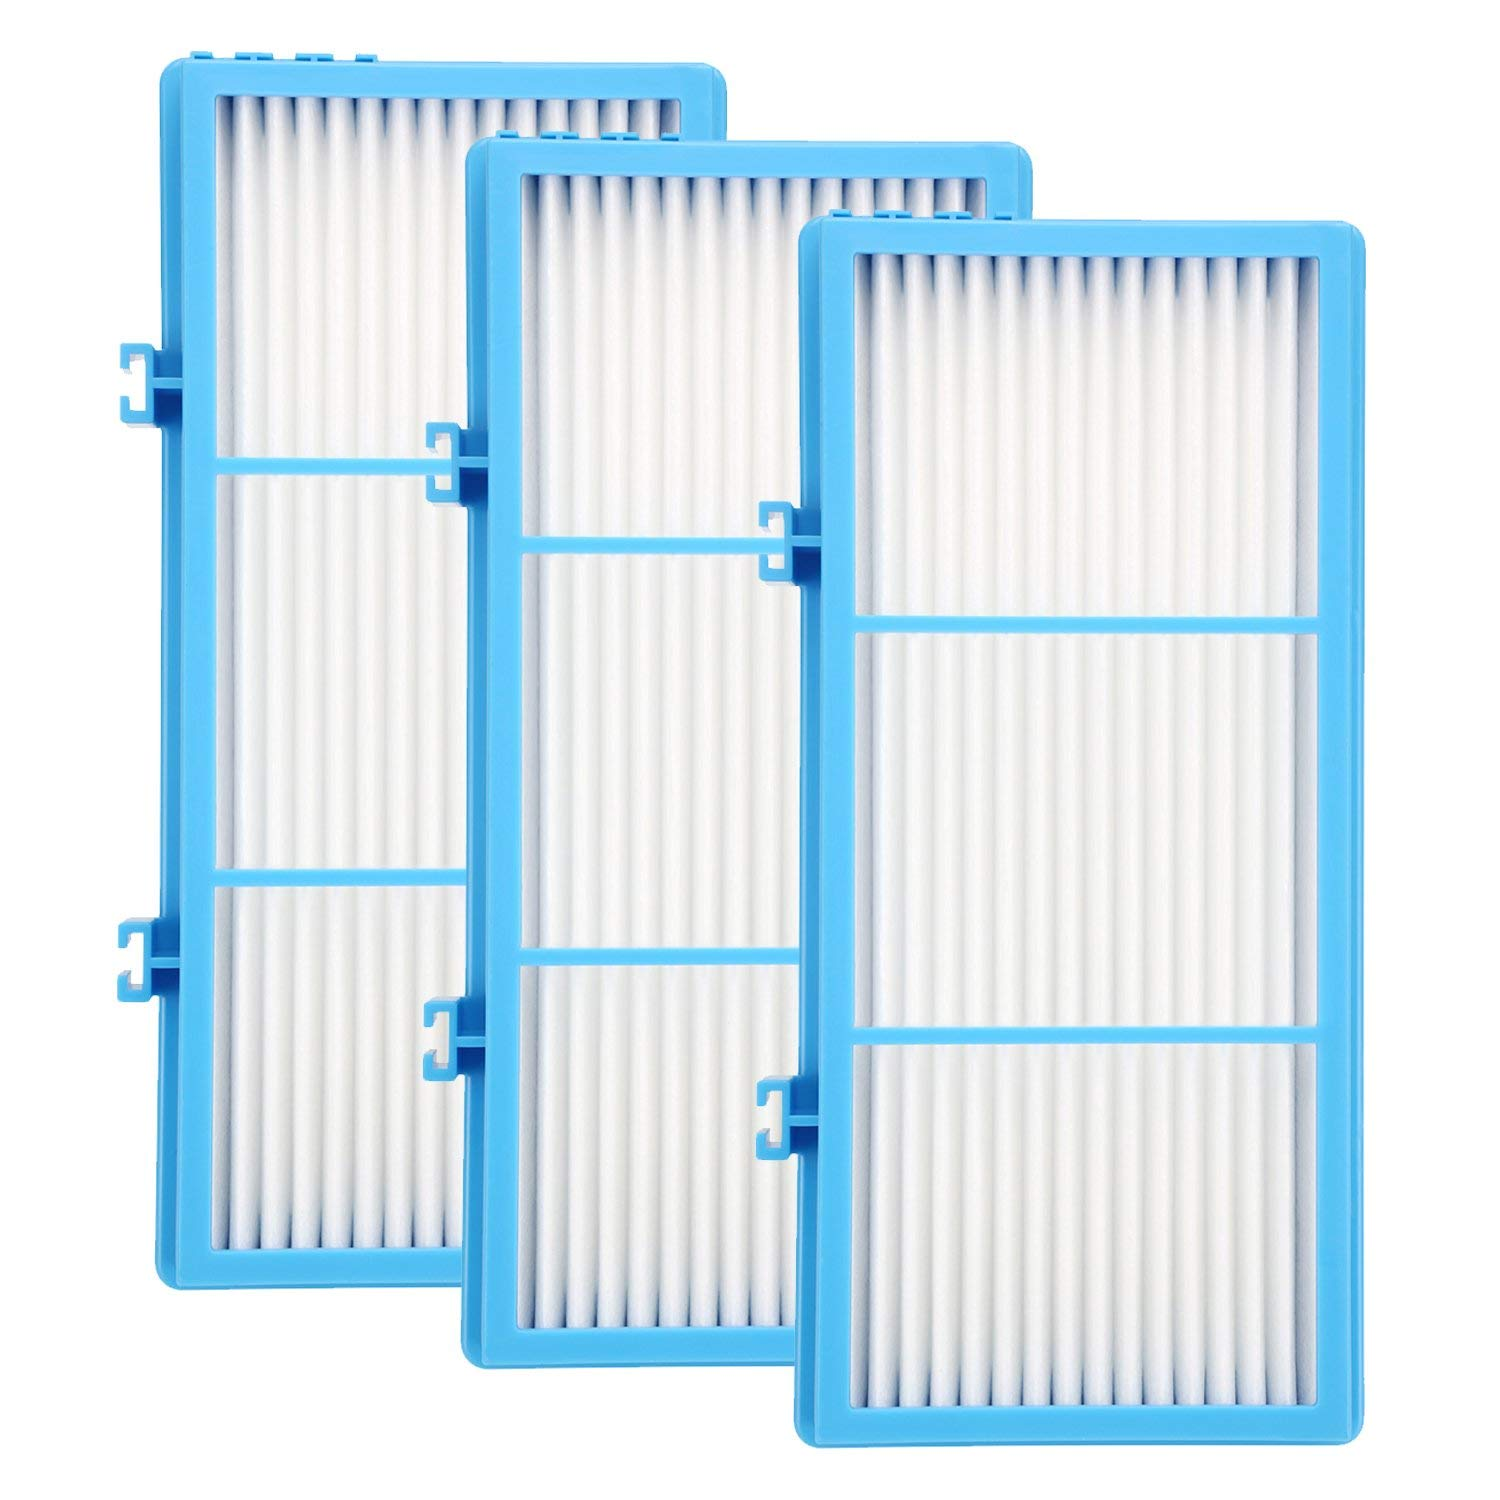 3-Pack Replacement Filter for Holmes Air Purifier Filter AER1, Total Air HEPA Type Filter-HAPF30AT3-Pack Replacement Filter for Holmes Air Purifier Filter AER1, Total Air HEPA Type Filter-HAPF30AT